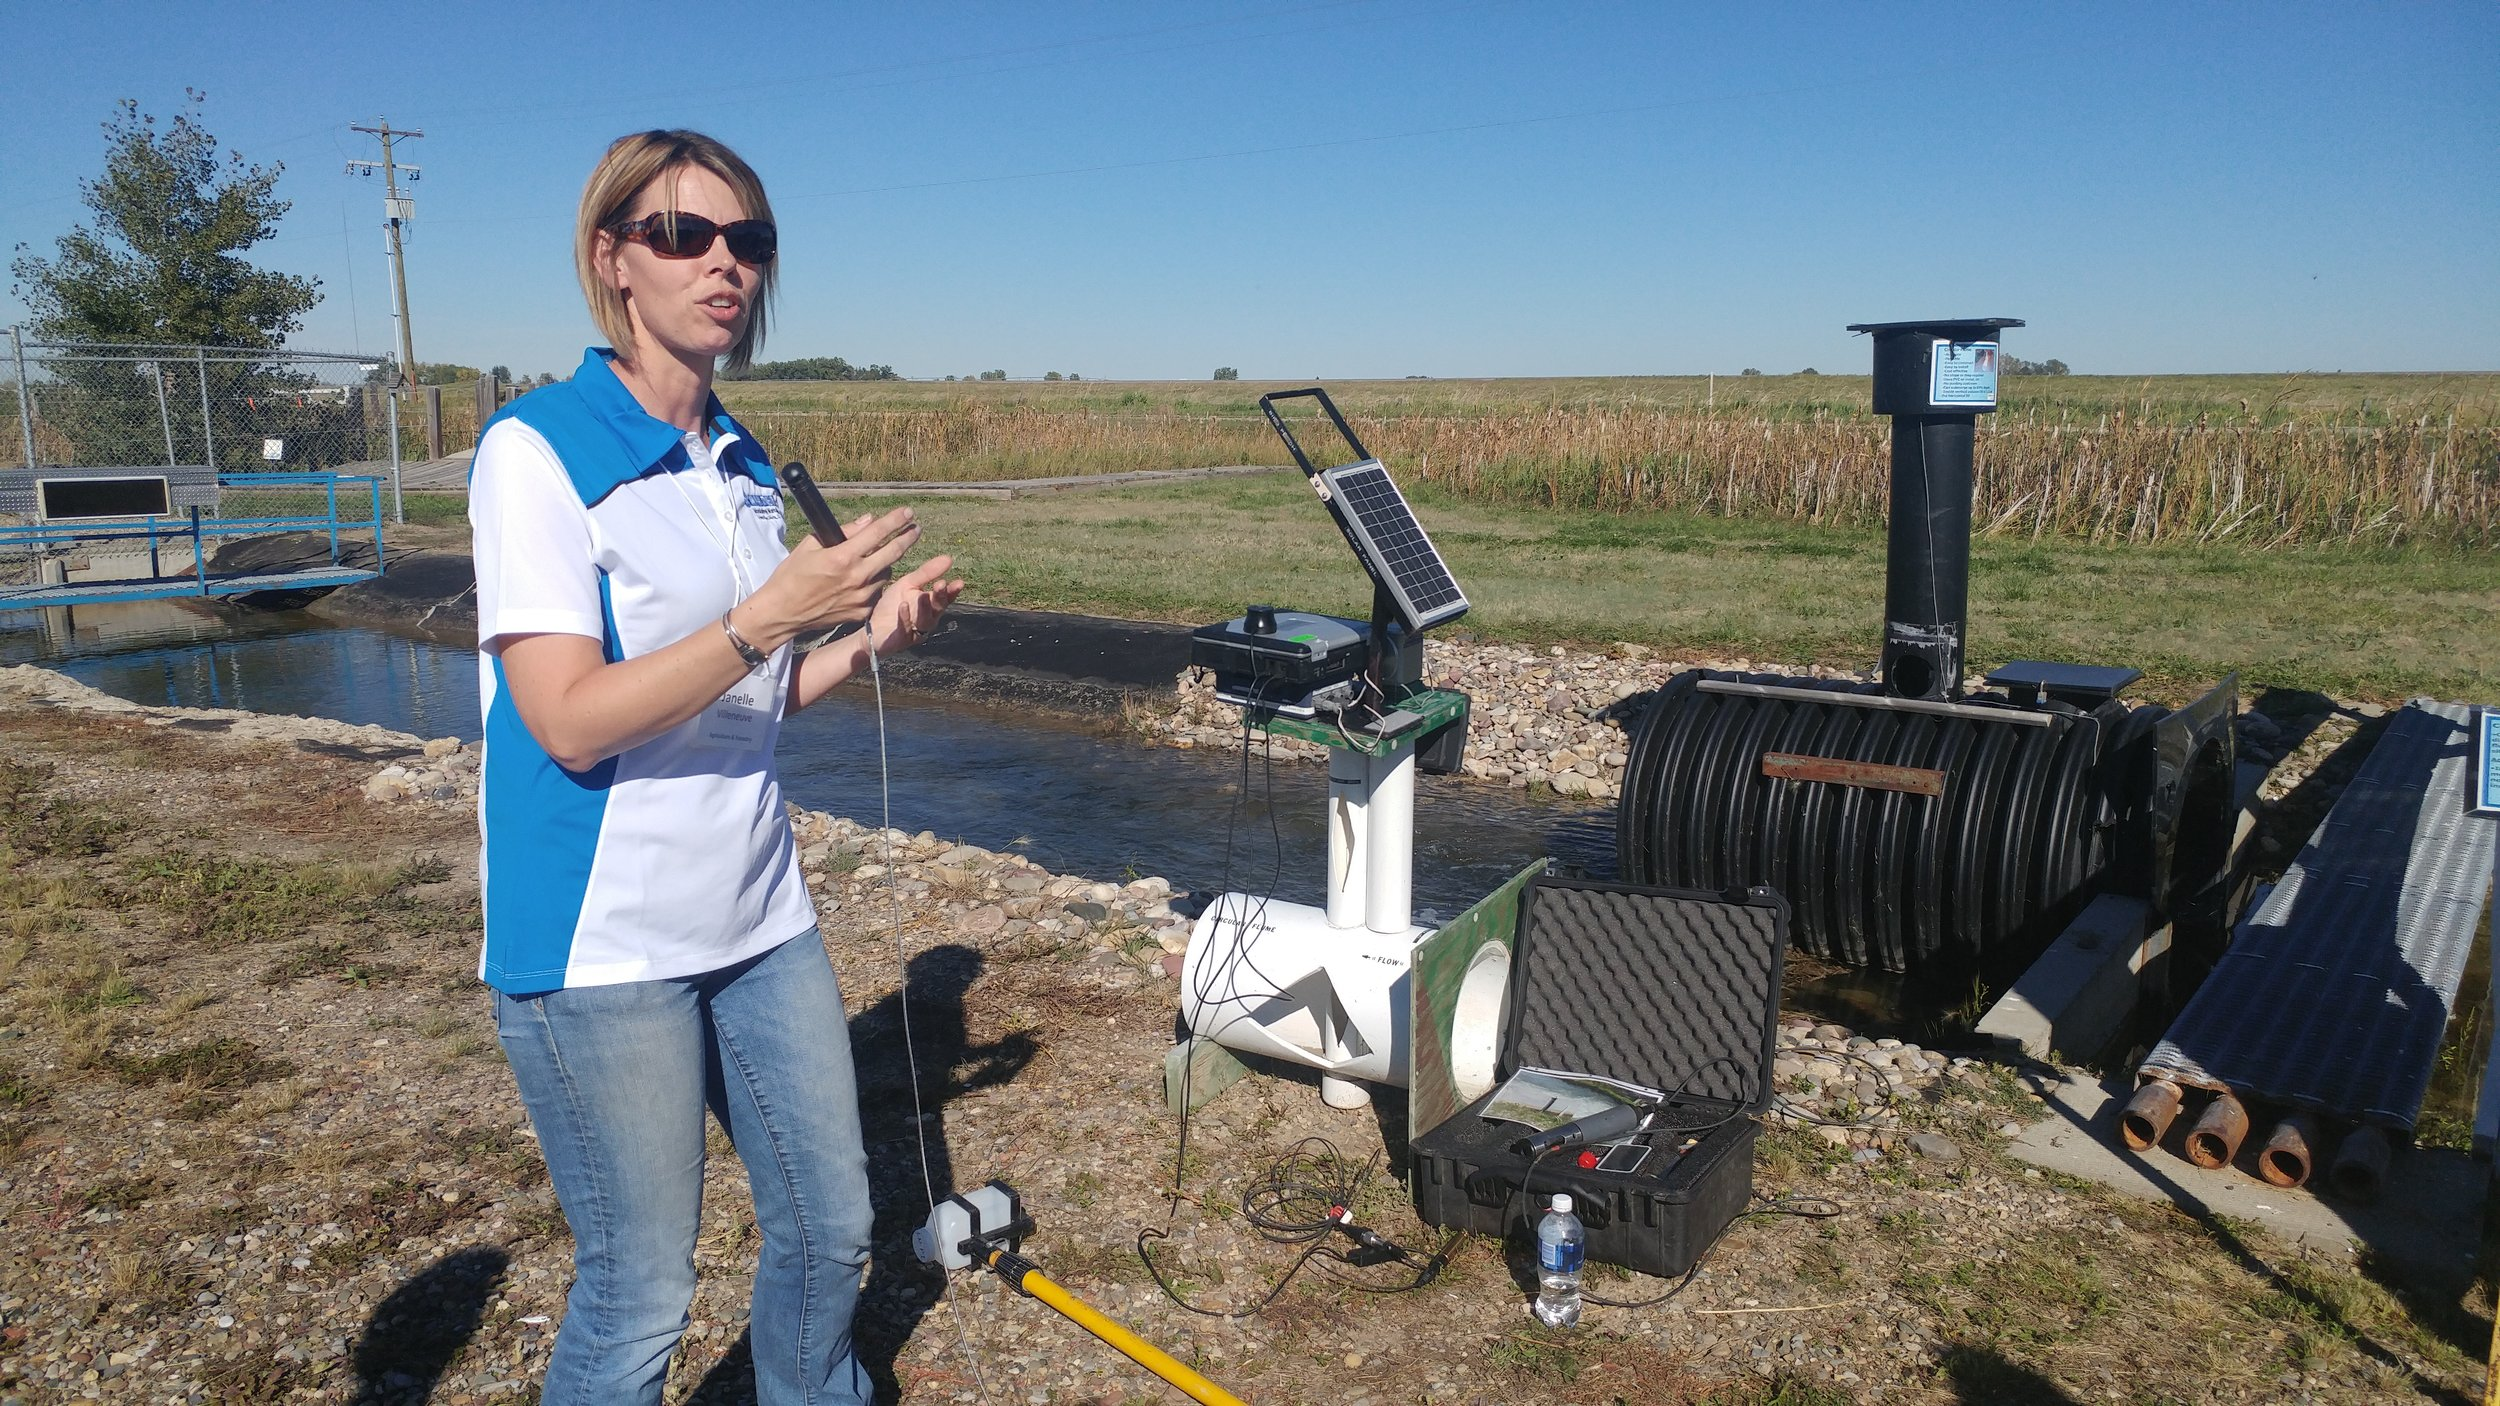 Janelle Villeneuve, Water Quality Specialist, Alberta Agriculture and Forestry giving a presentation of the equipment her team used on the synoptic surveys of the Oldman and the Bow Rivers.